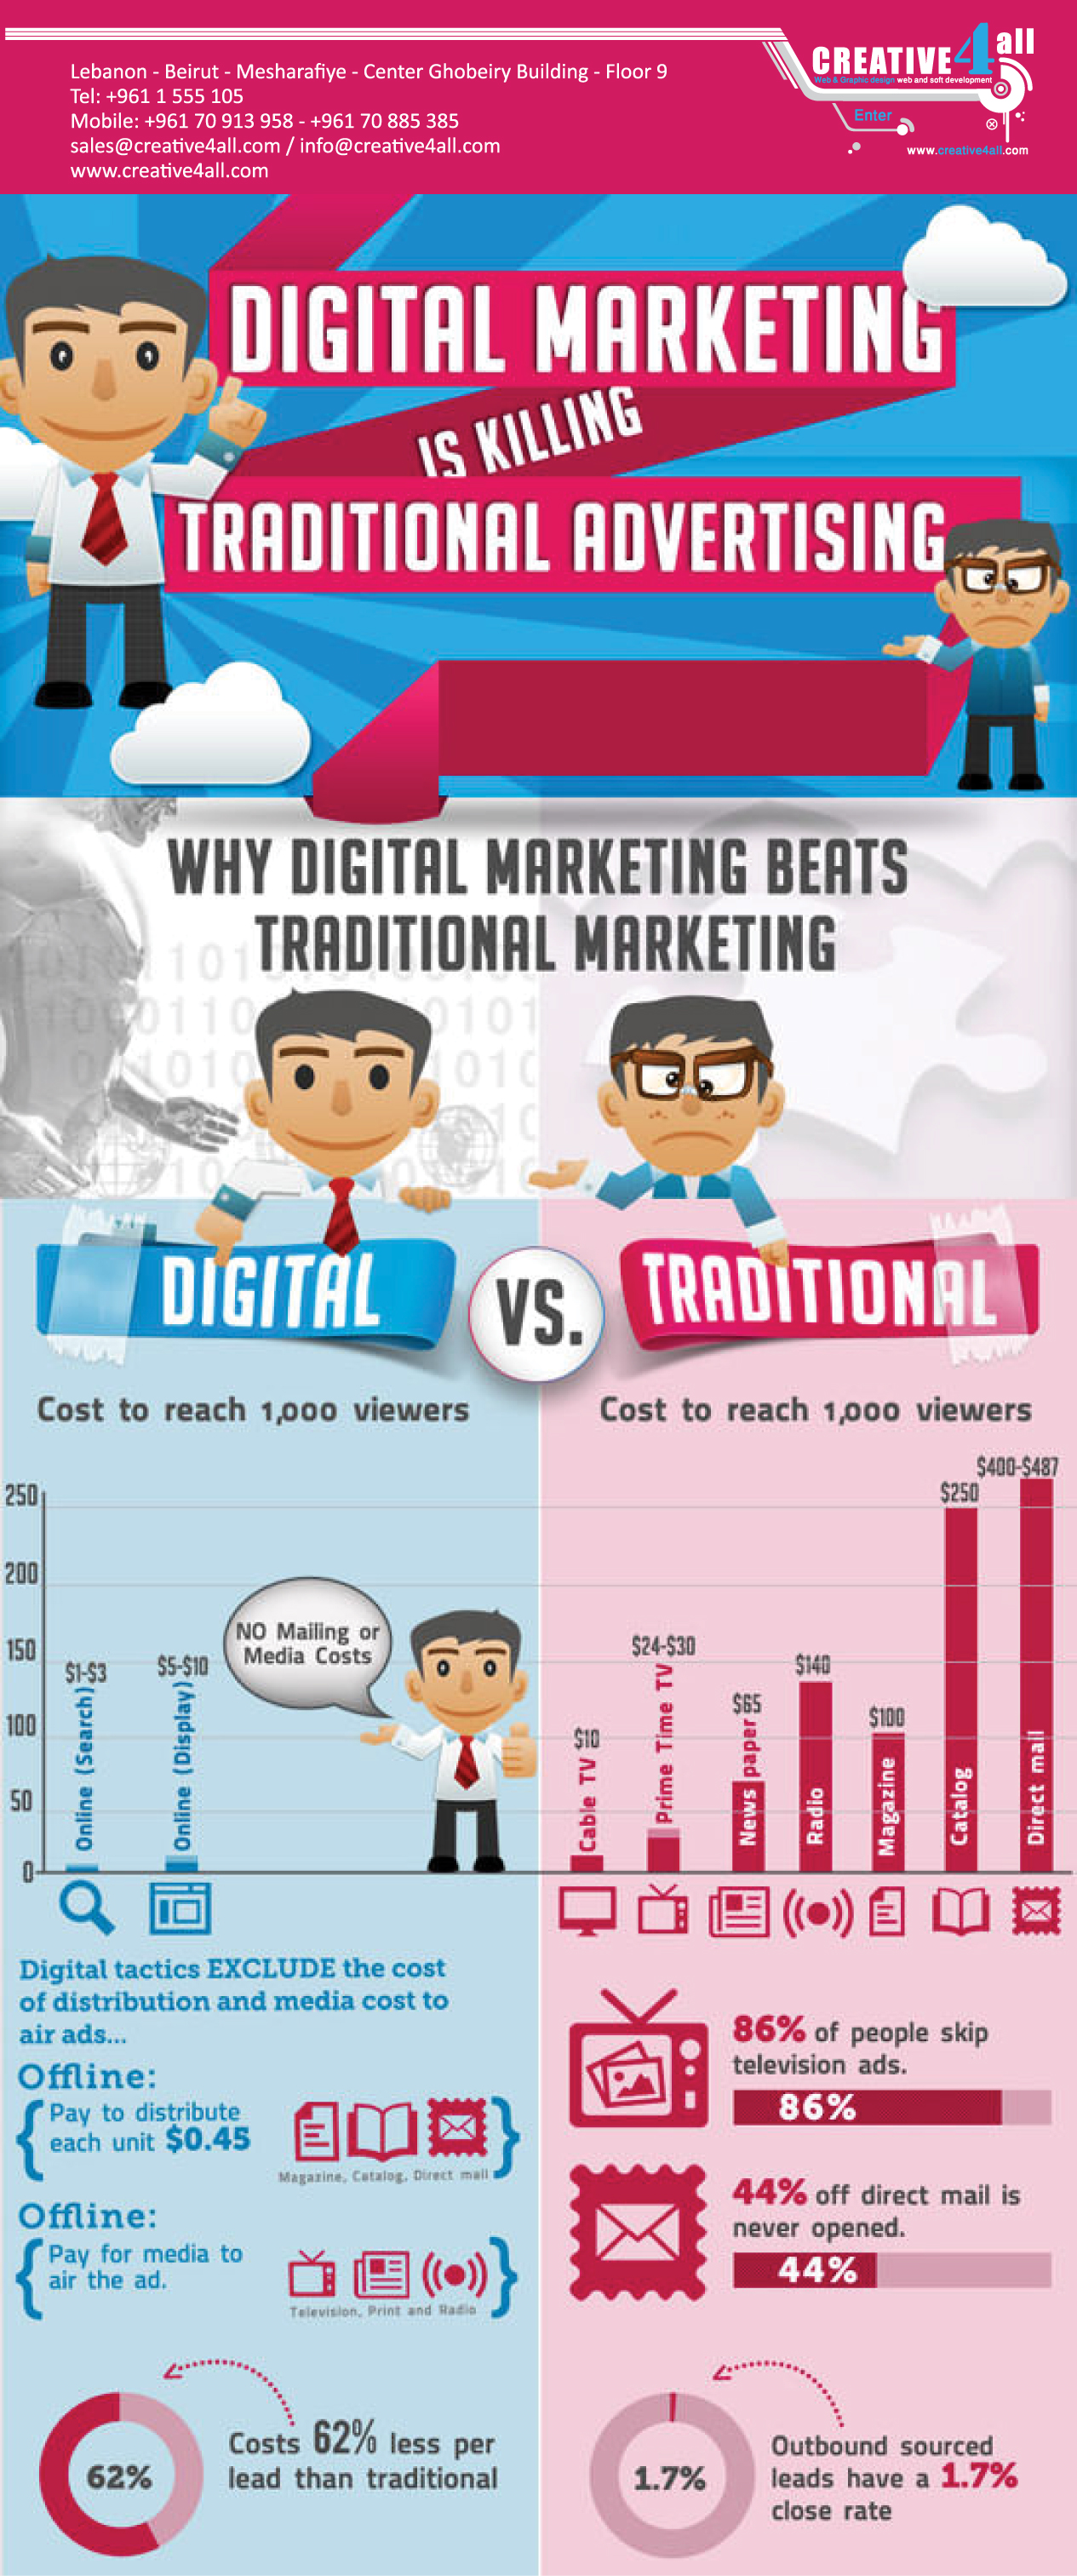 why-digital-marketing-is-killing-traditional-advertising